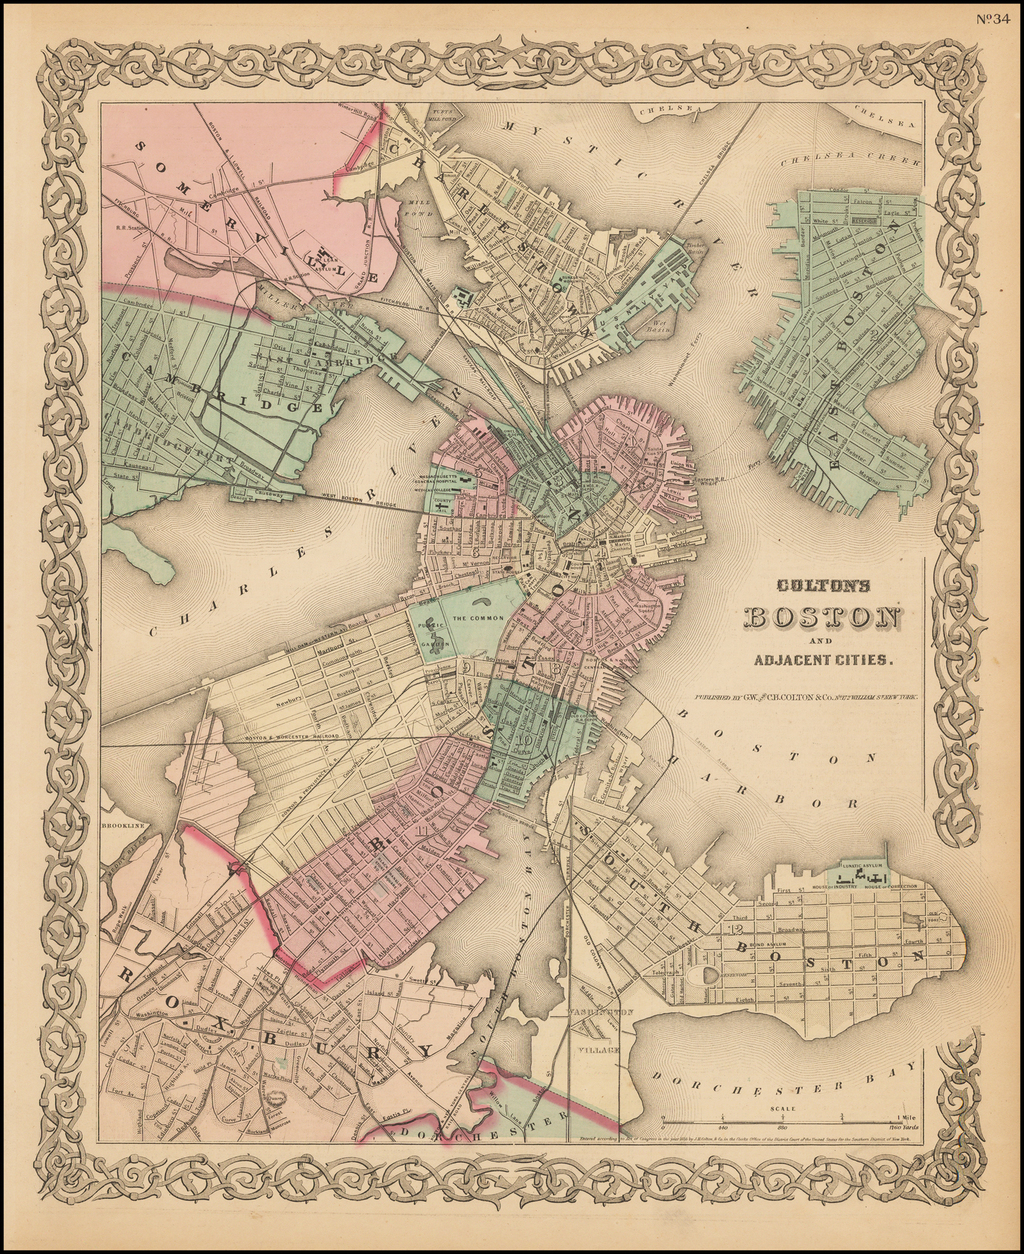 Colton's Map of Boston And Adjacent Cities By Joseph Hutchins Colton